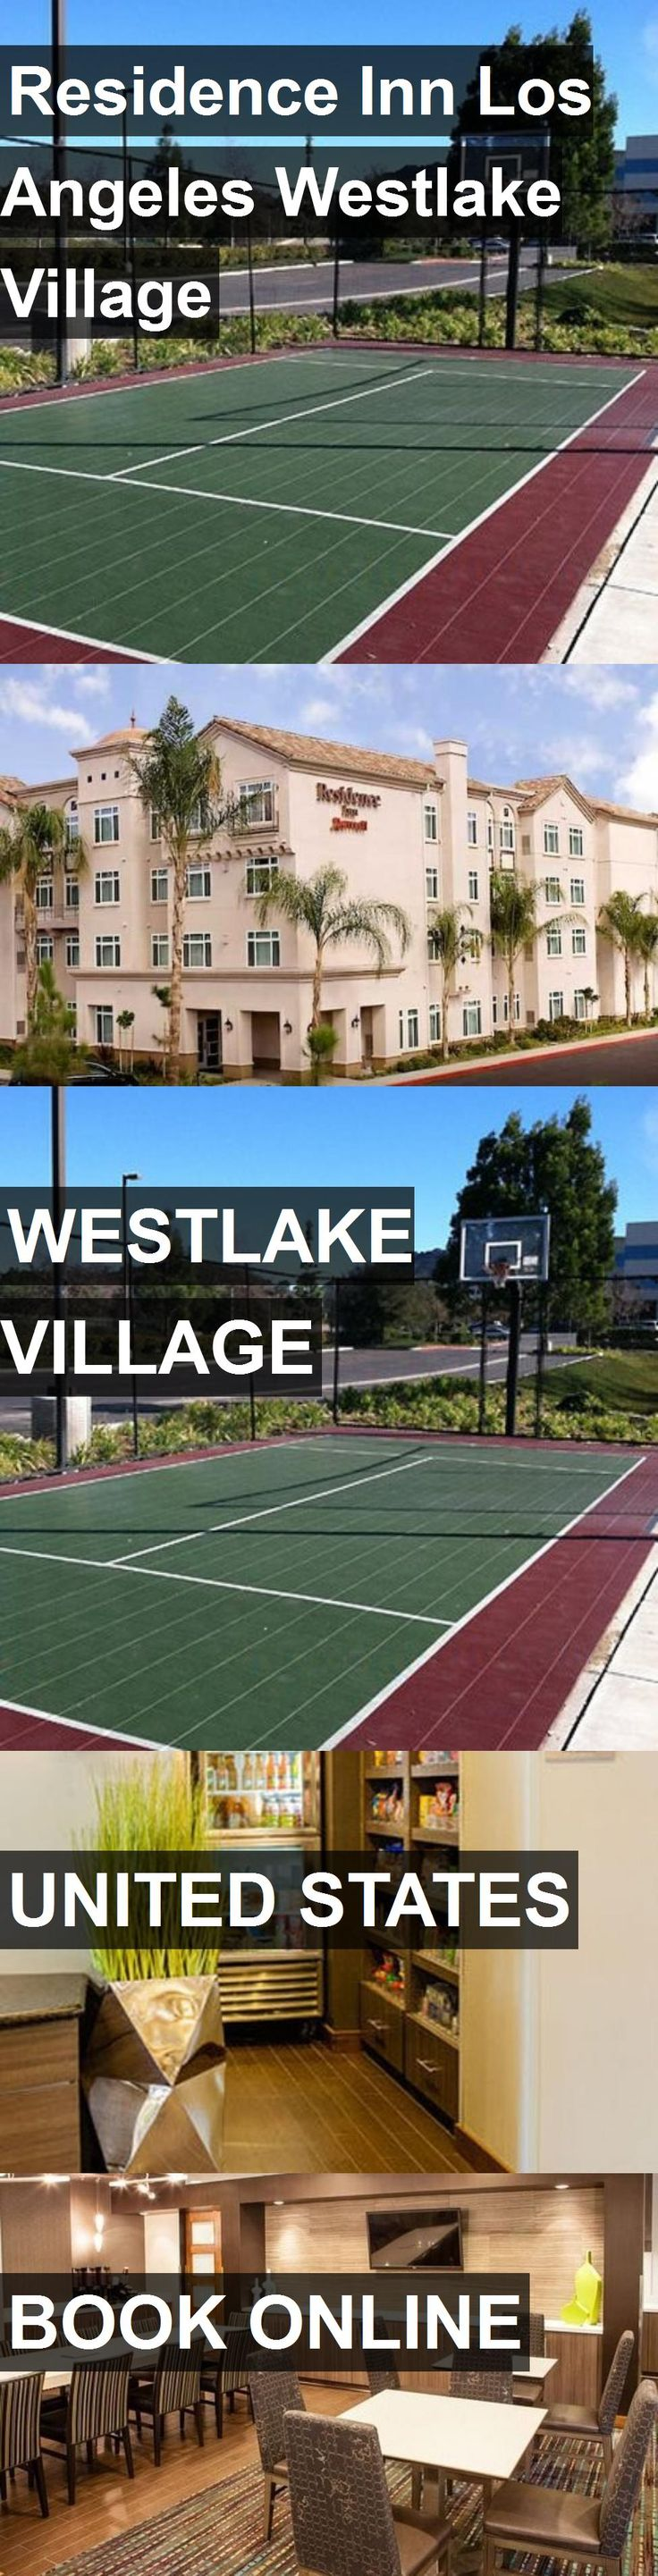 Hotel Residence Inn Los Angeles Westlake Village in Westlake Village, United States. For more information, photos, reviews and best prices please follow the link. #UnitedStates #WestlakeVillage #travel #vacation #hotel